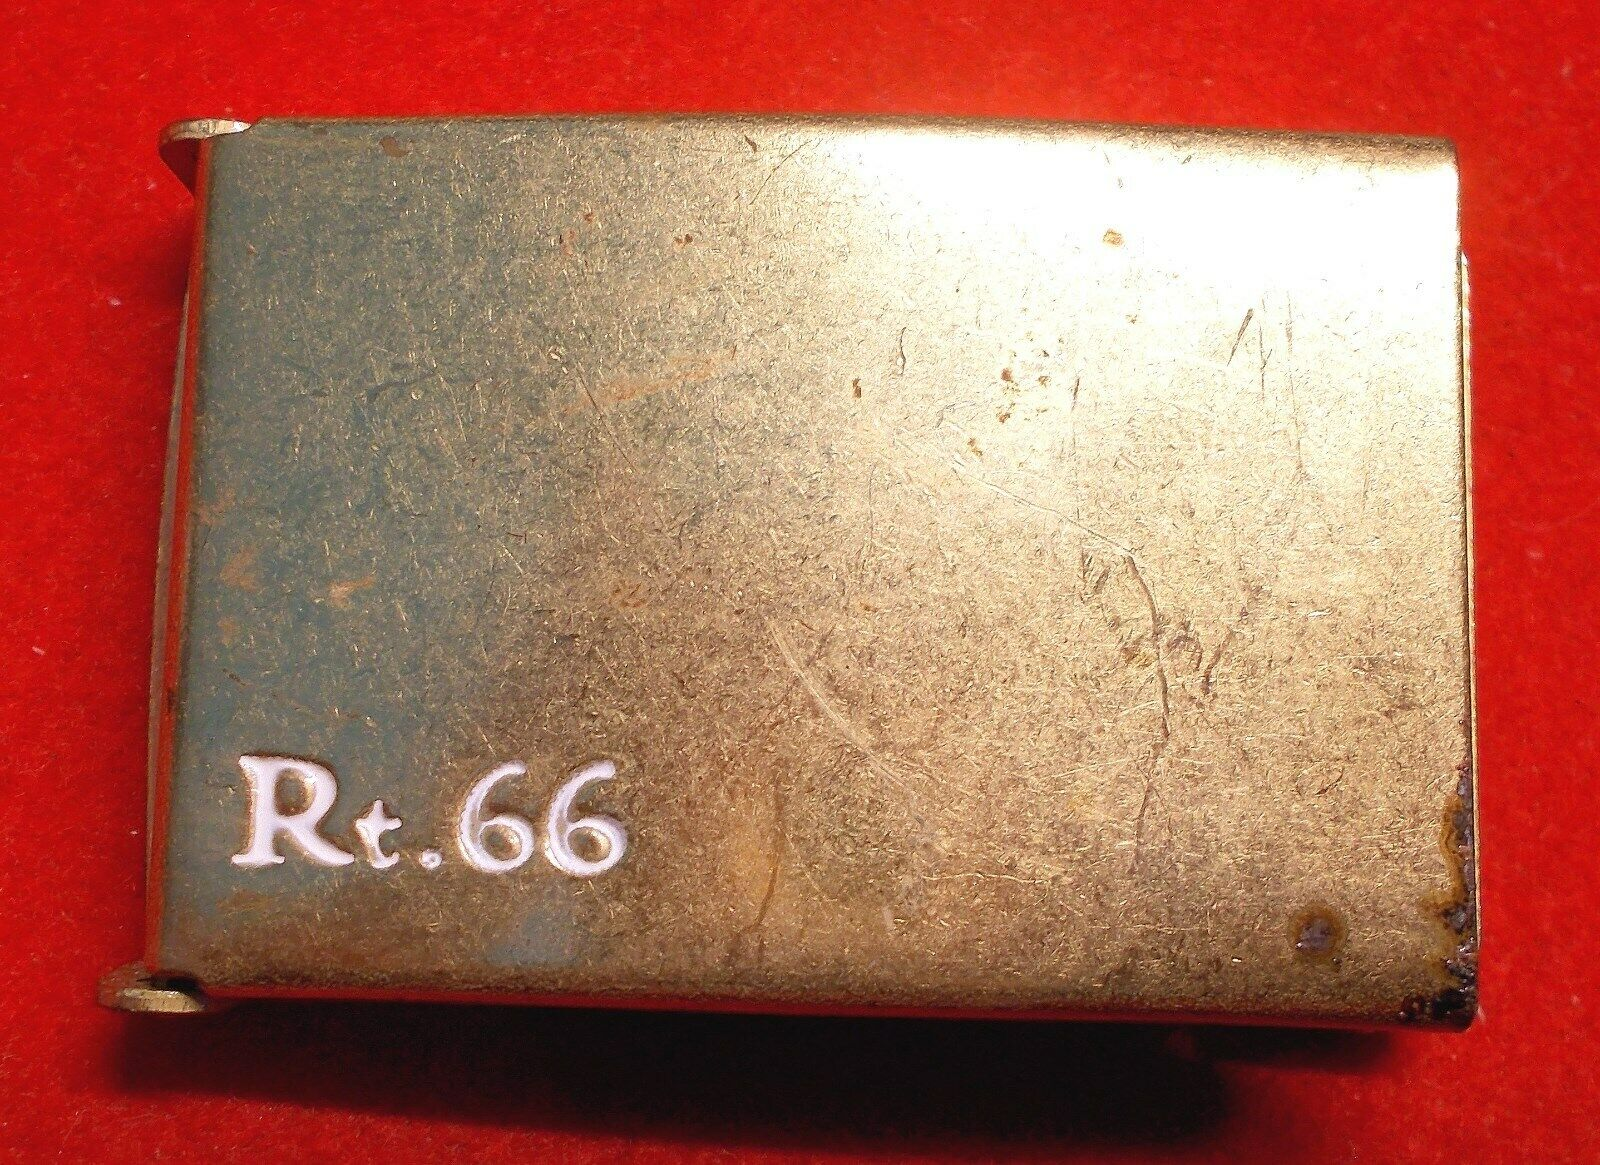 Route 66 Inscribed Belt Buckle for Wab Belt Souvenir for the famous Rt. 66 1960s